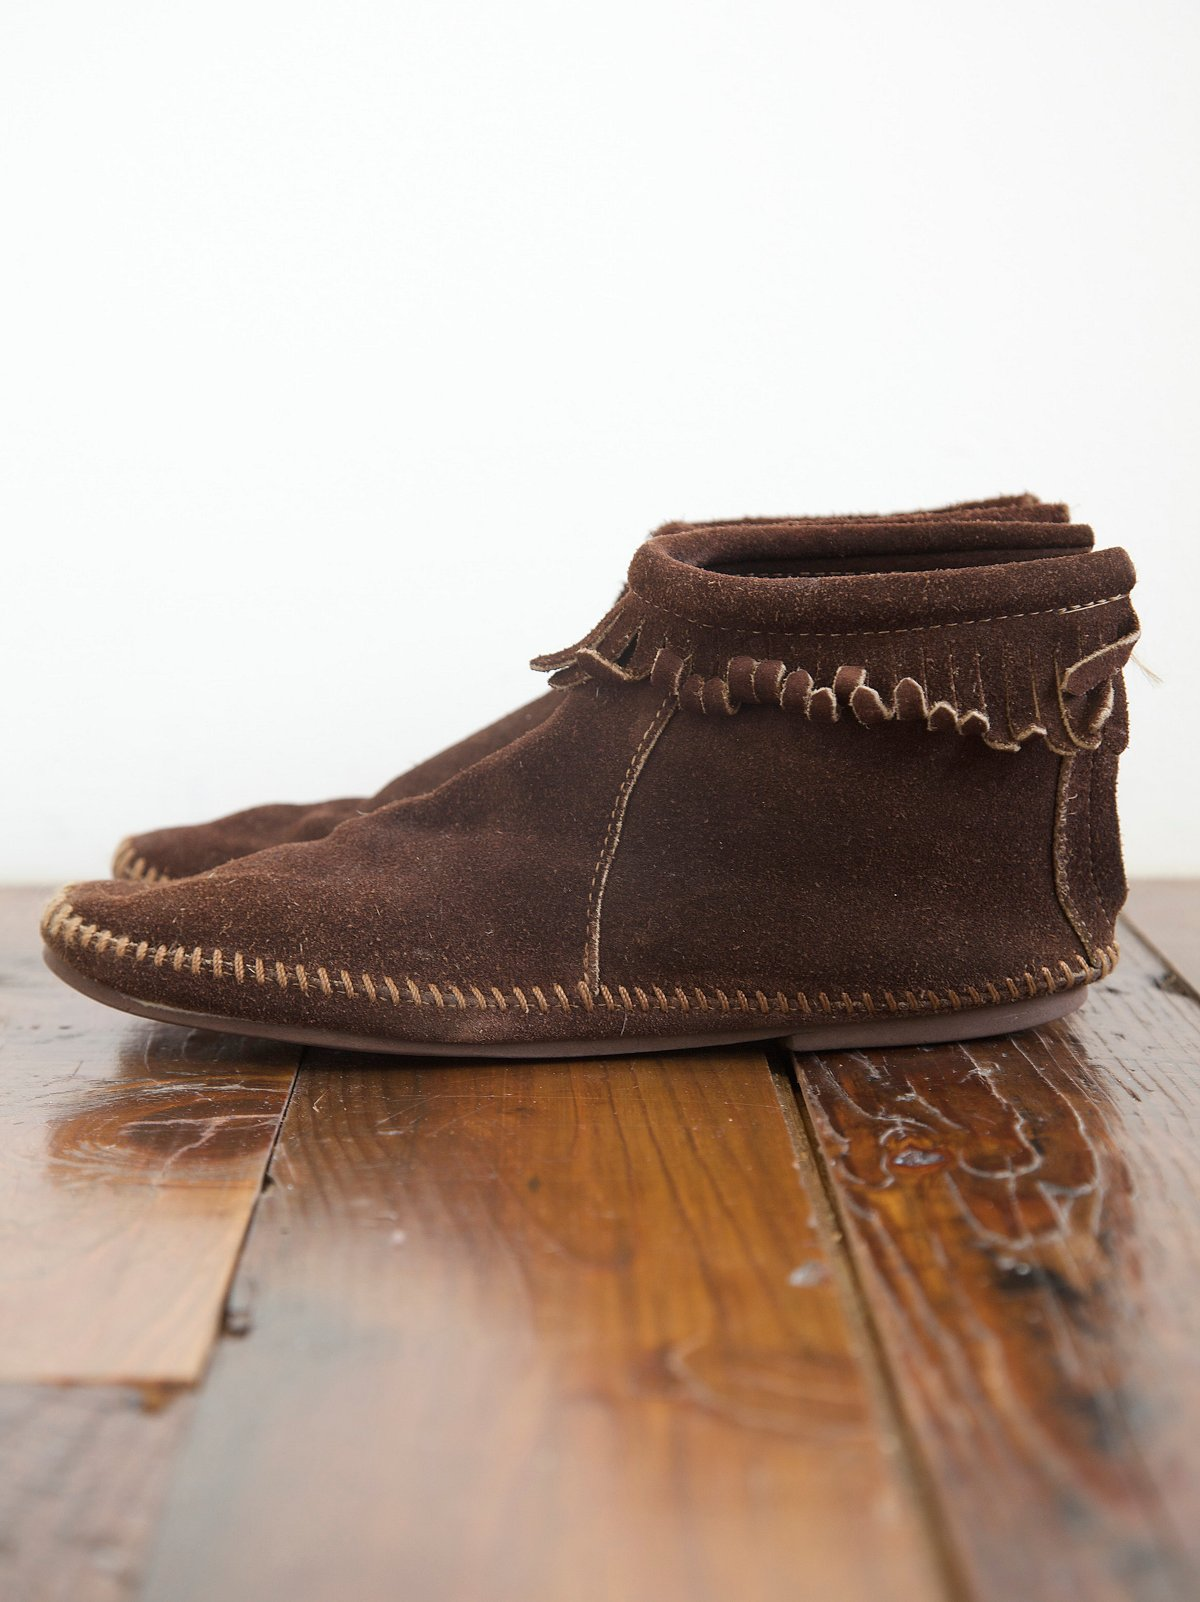 Vintage Brown Moccasins